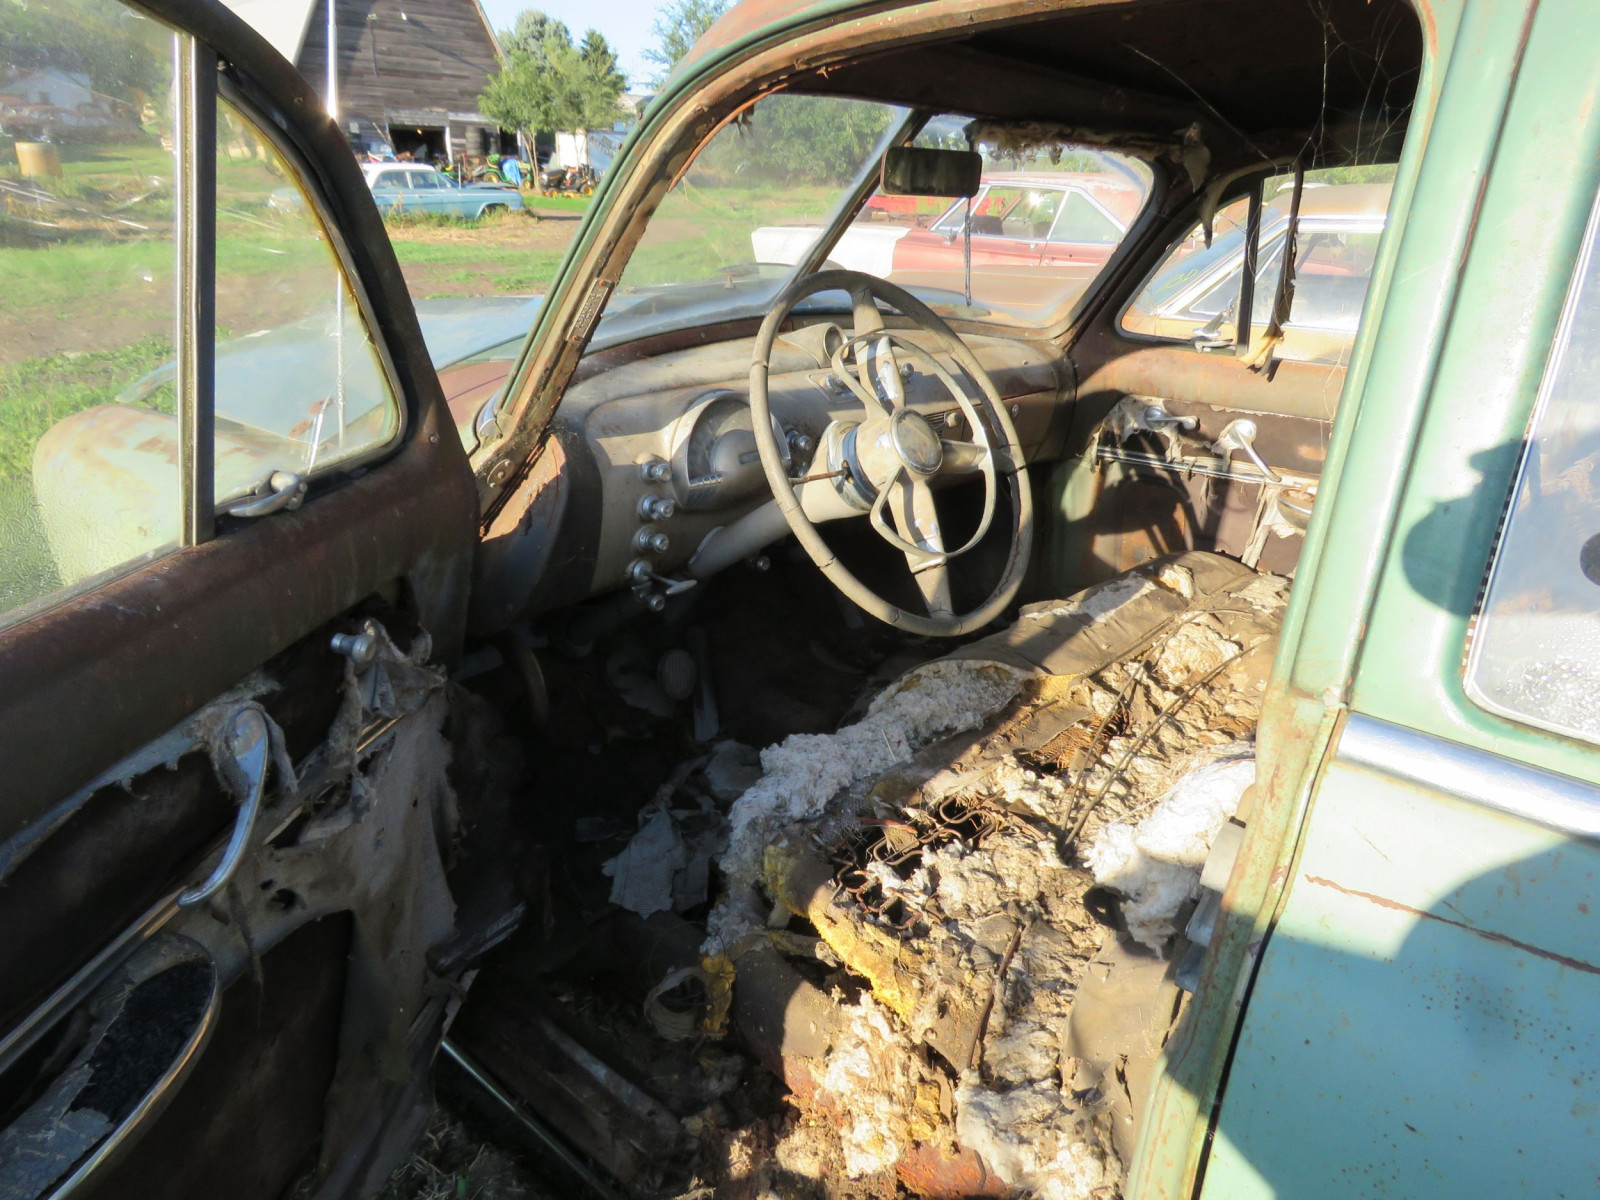 1949 Oldsmobile 4dr Sedan for Project or Parts - Image 5